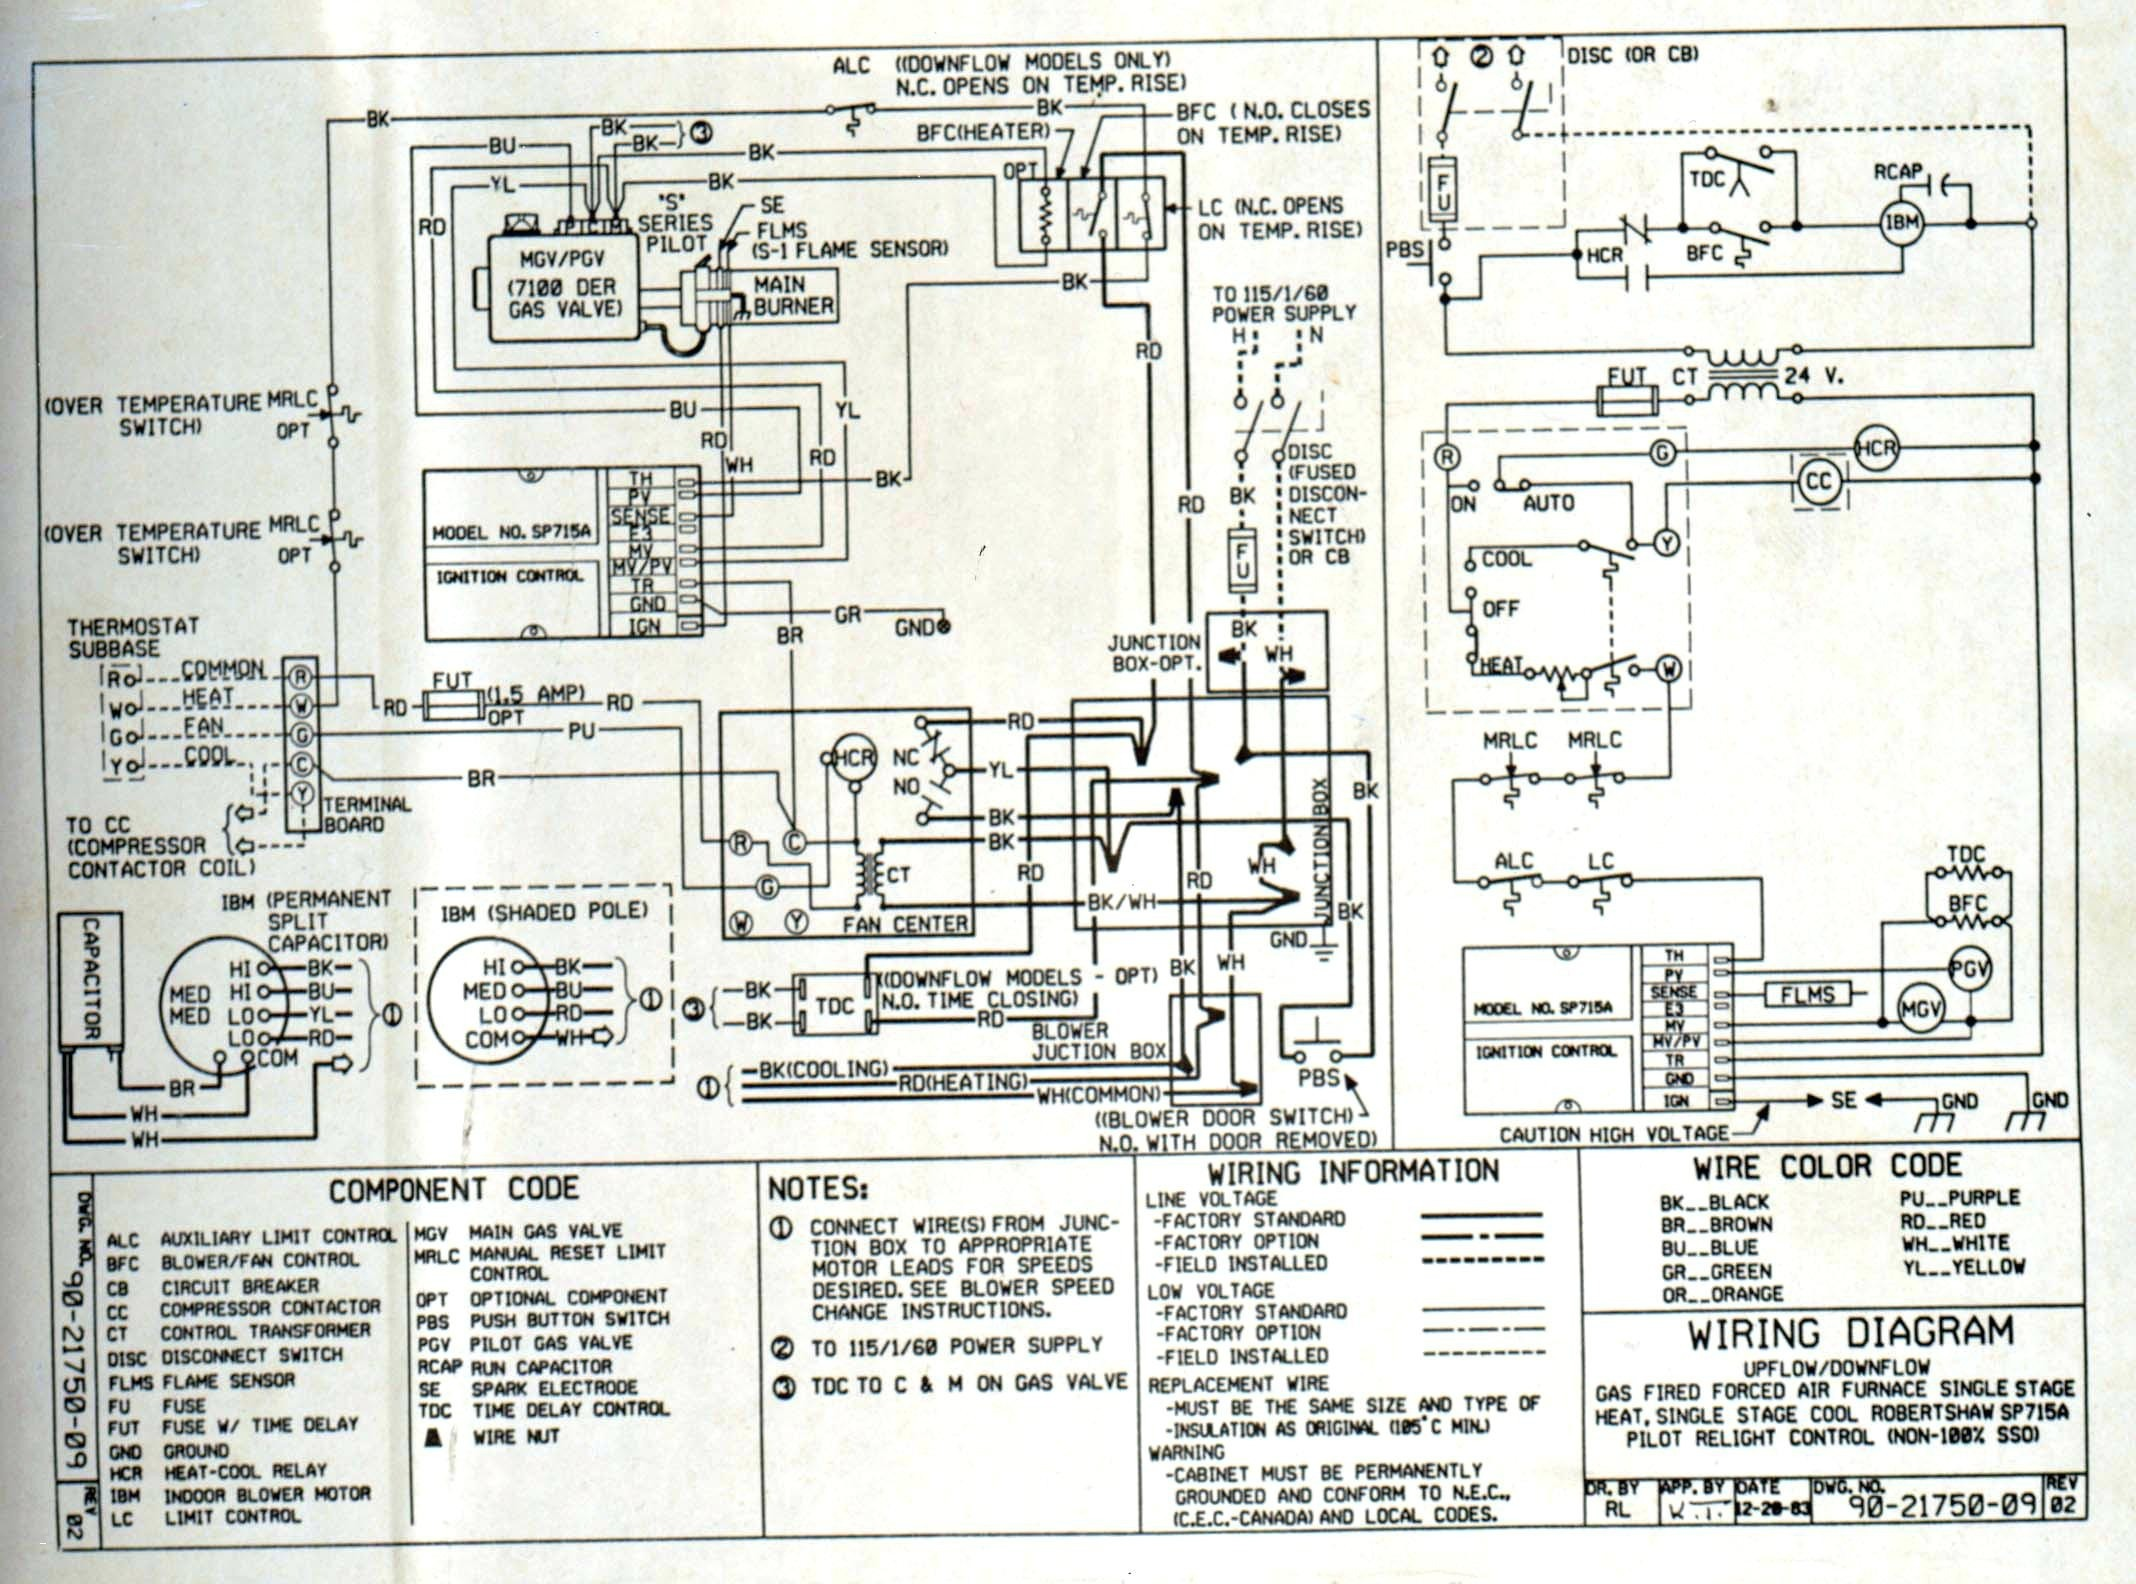 goodman condensing unit wiring diagram basic wiring diagram \u2022 intertherm condensing unit wiring diagram goodman condensing unit wiring diagram wiring diagram image rh mainetreasurechest com condenser fan motor wiring diagram